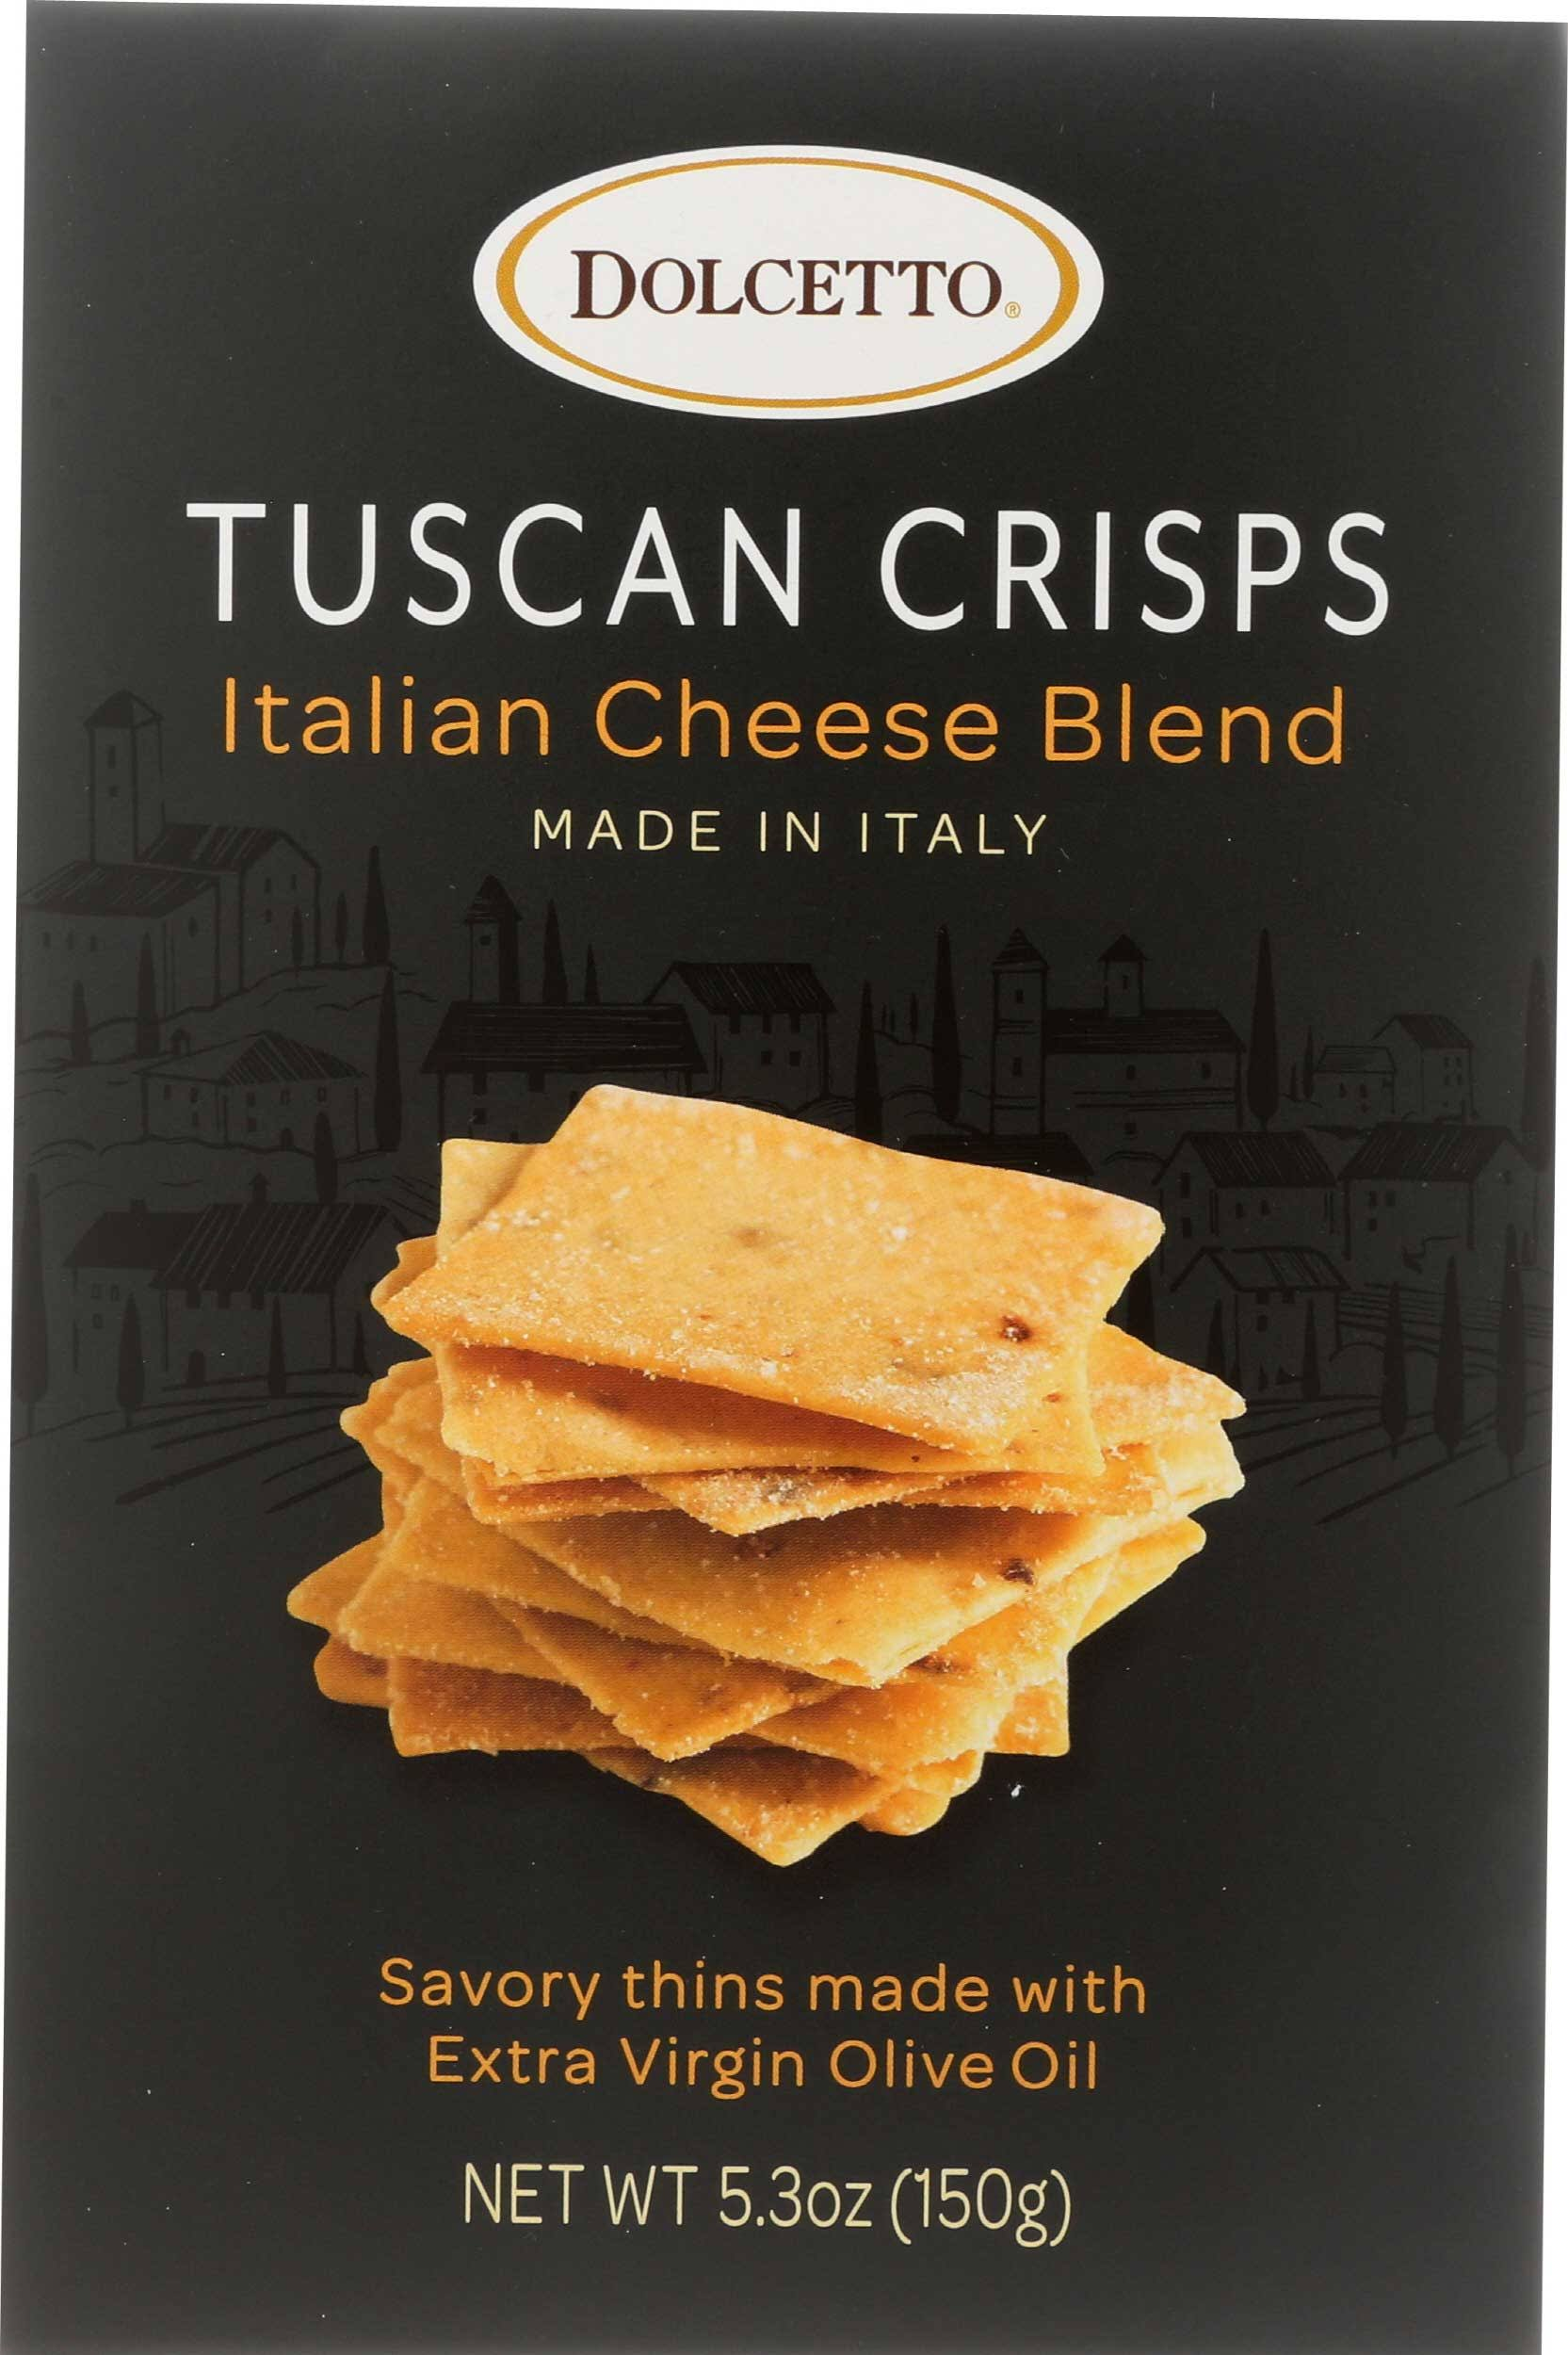 Dolcetto Tuscan Crisp - Italian Cheese, 5.3oz